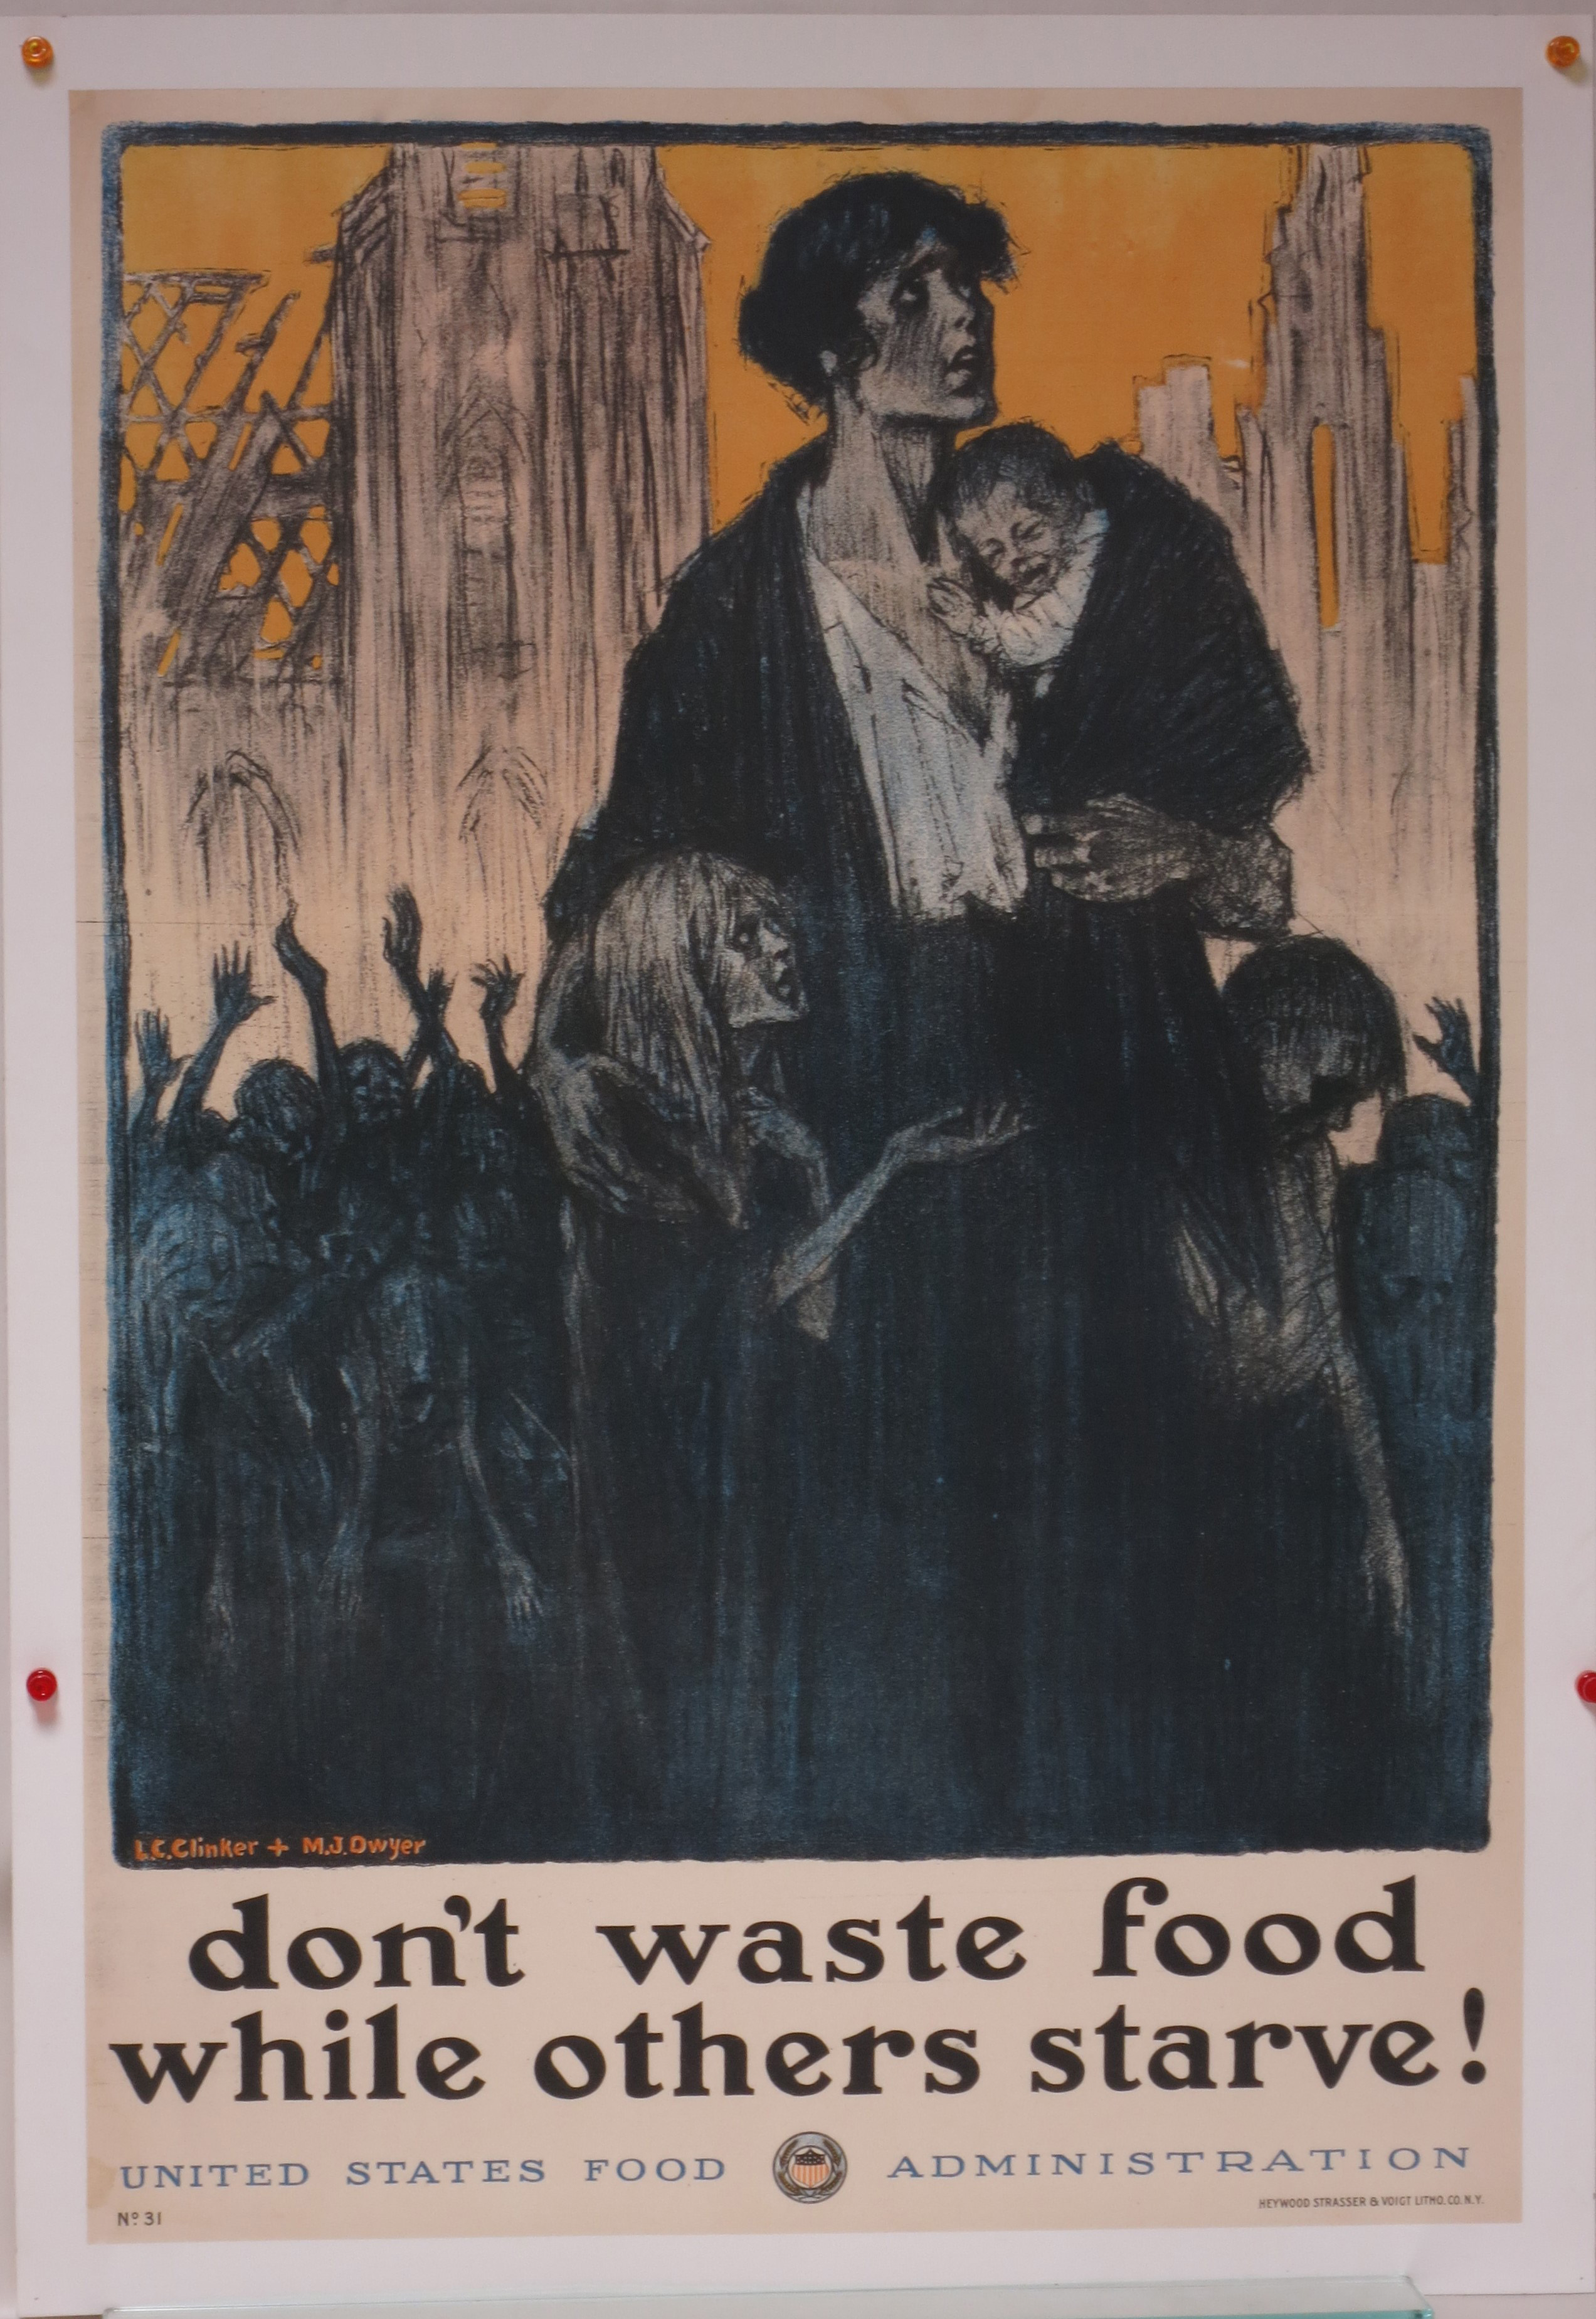 1918 poster advising against food waste